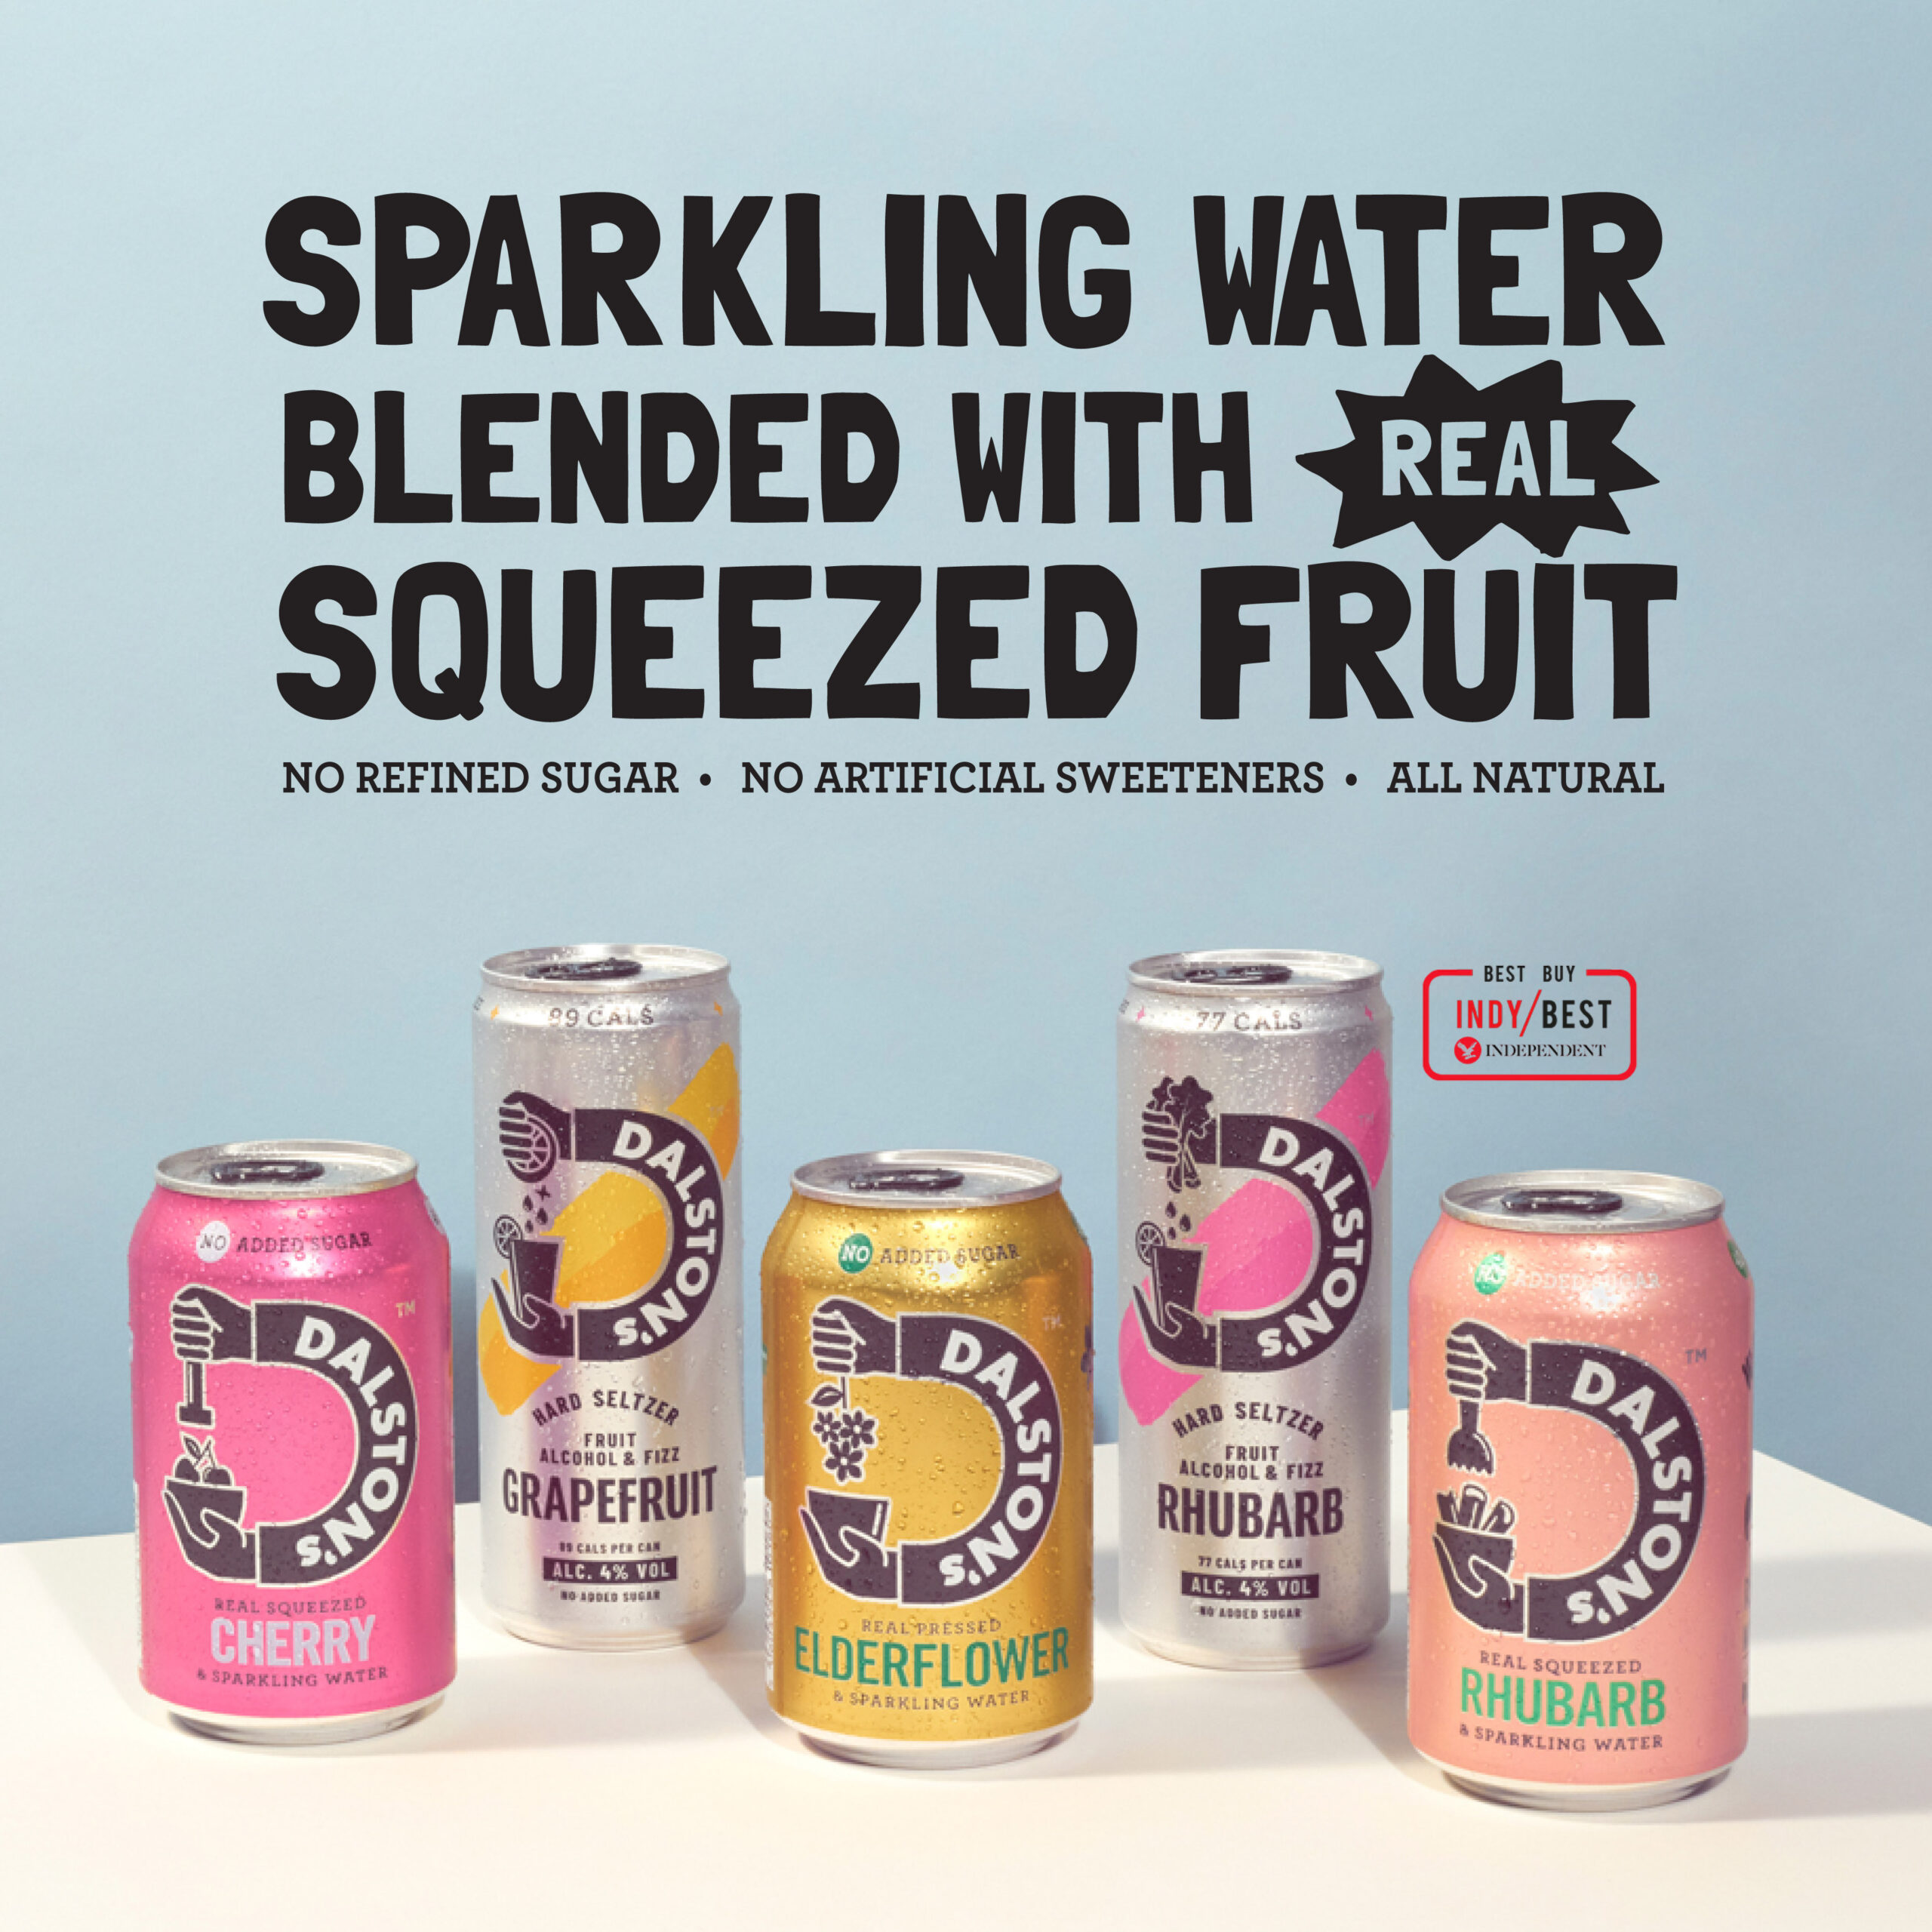 Dalston's sparkling water with real squeezed fruit